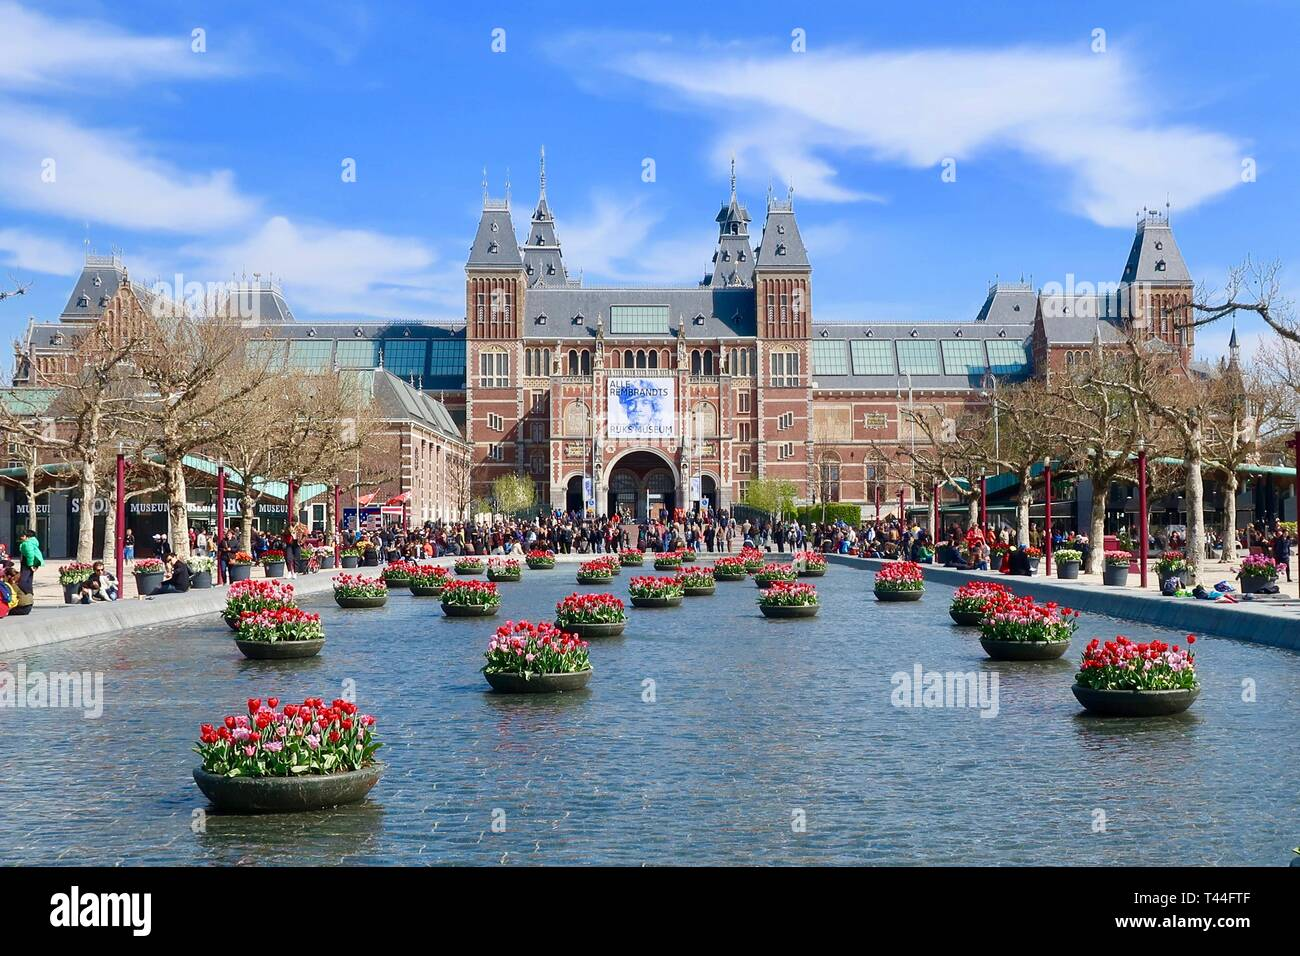 amsterdam-netherlands-april-2019-people-